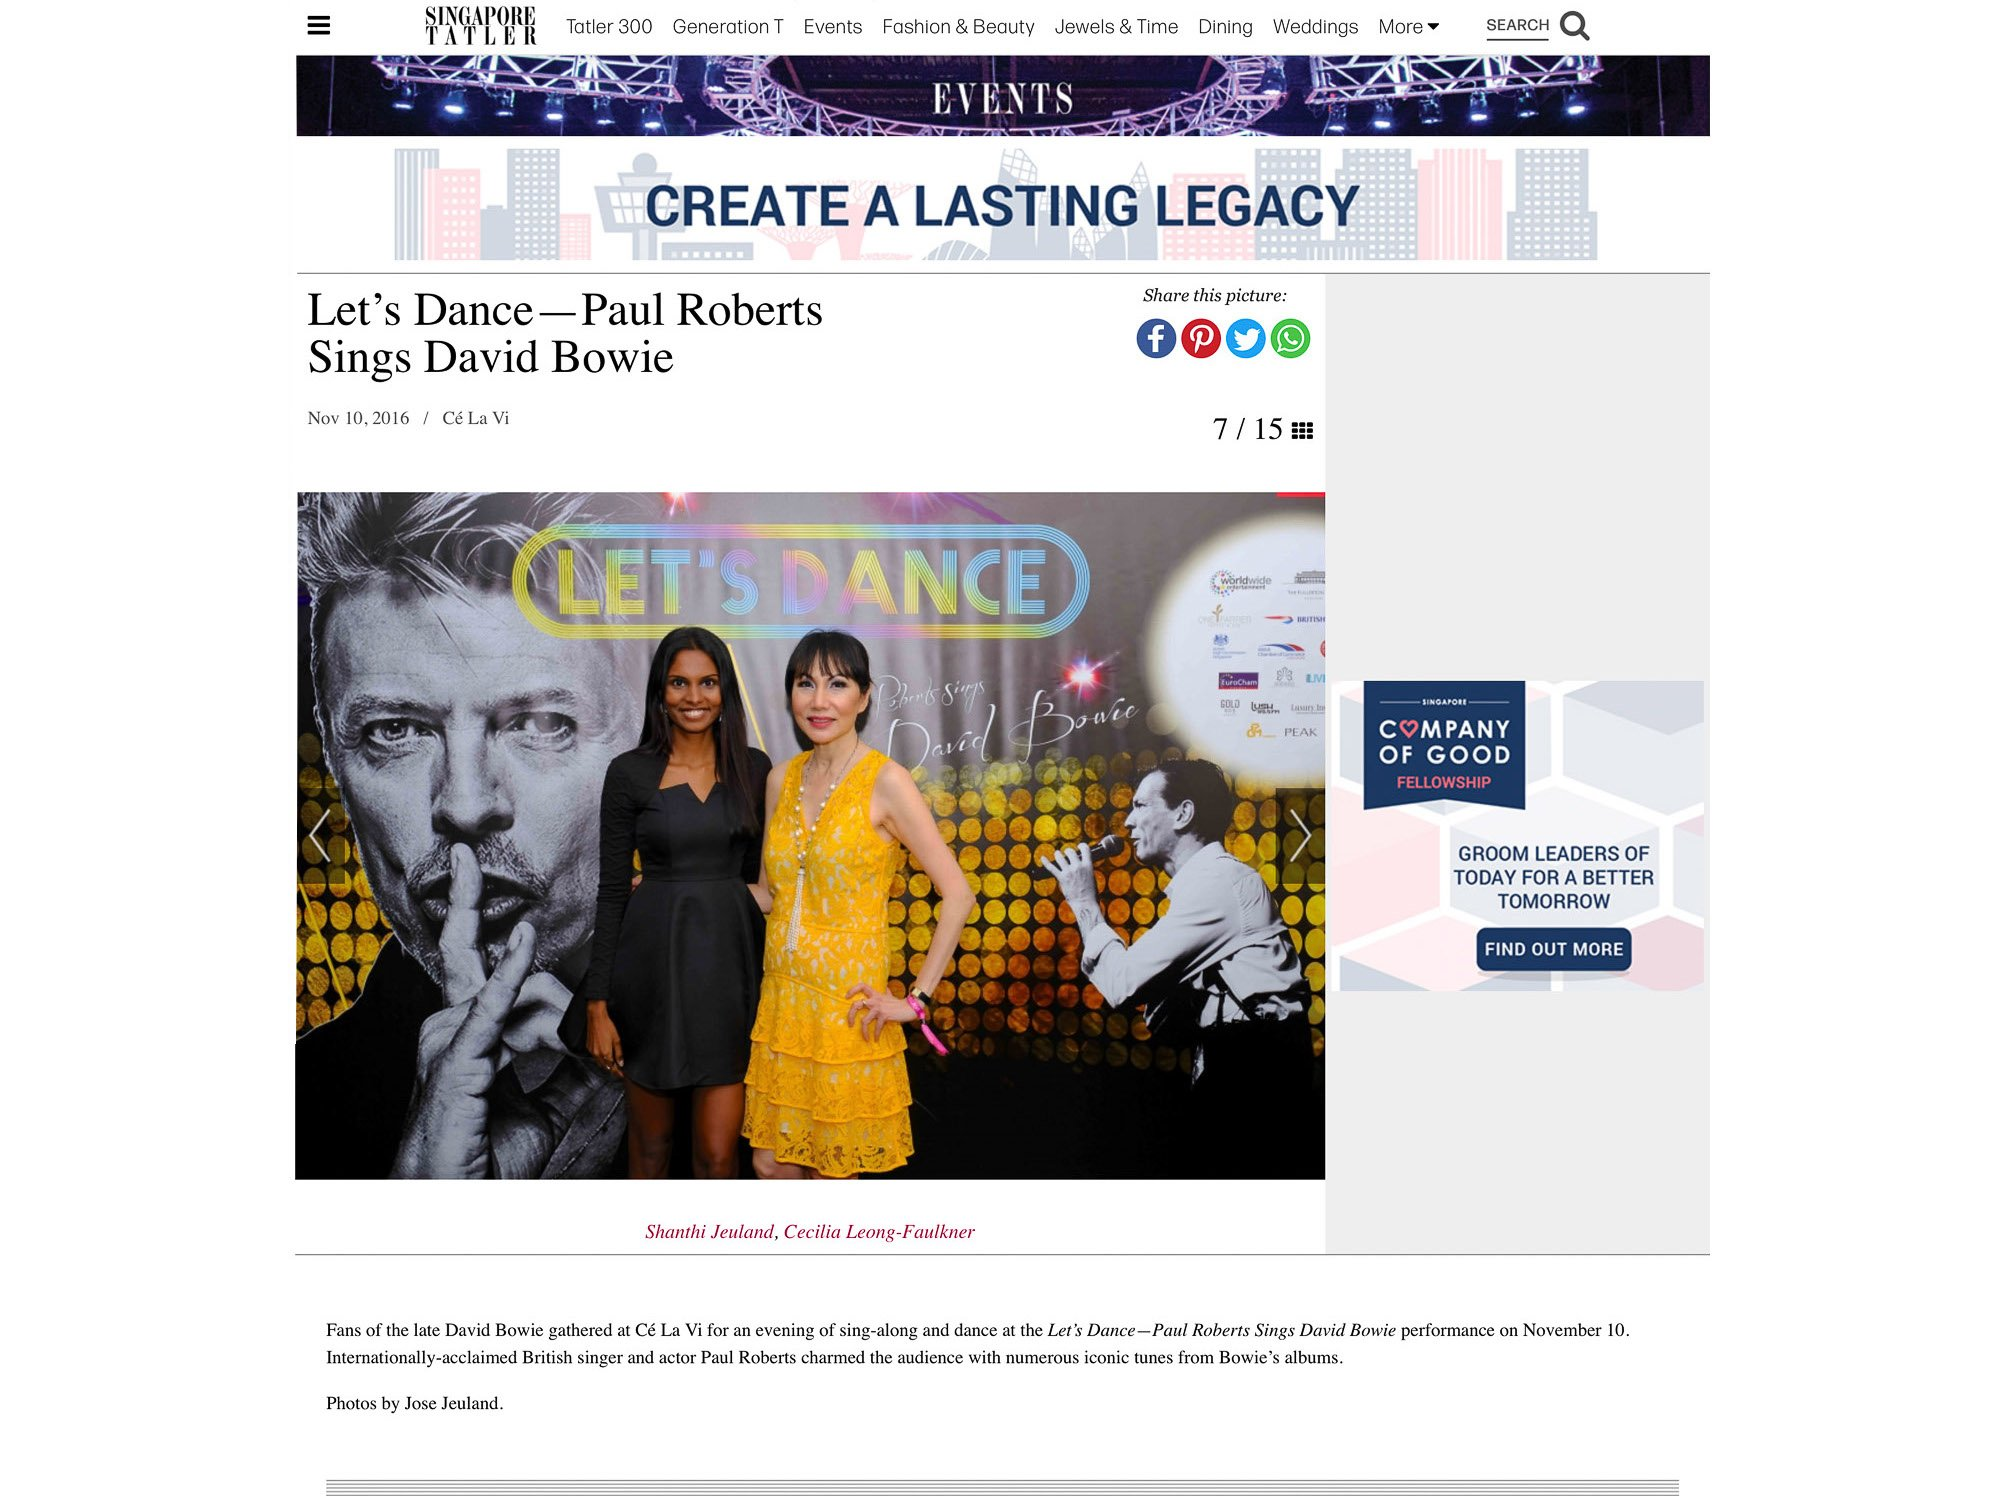 Tatler singapore British theatre play house singapore jose shanthi jeuland concert david bowie